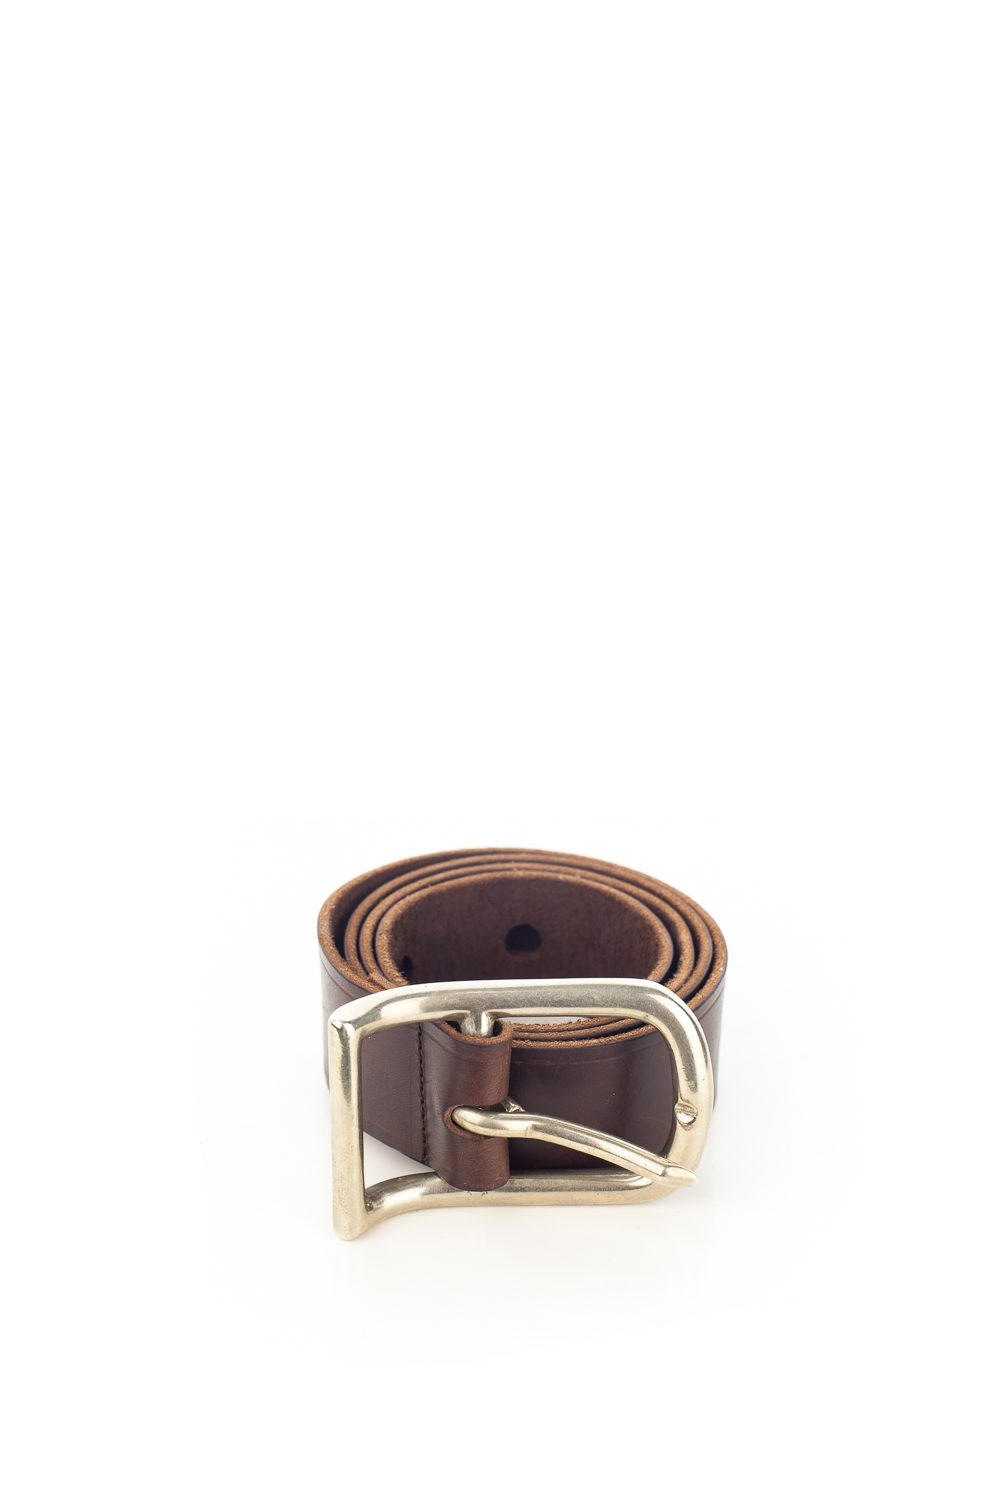 "Artisanal ""0 10"" Oversized Belt"